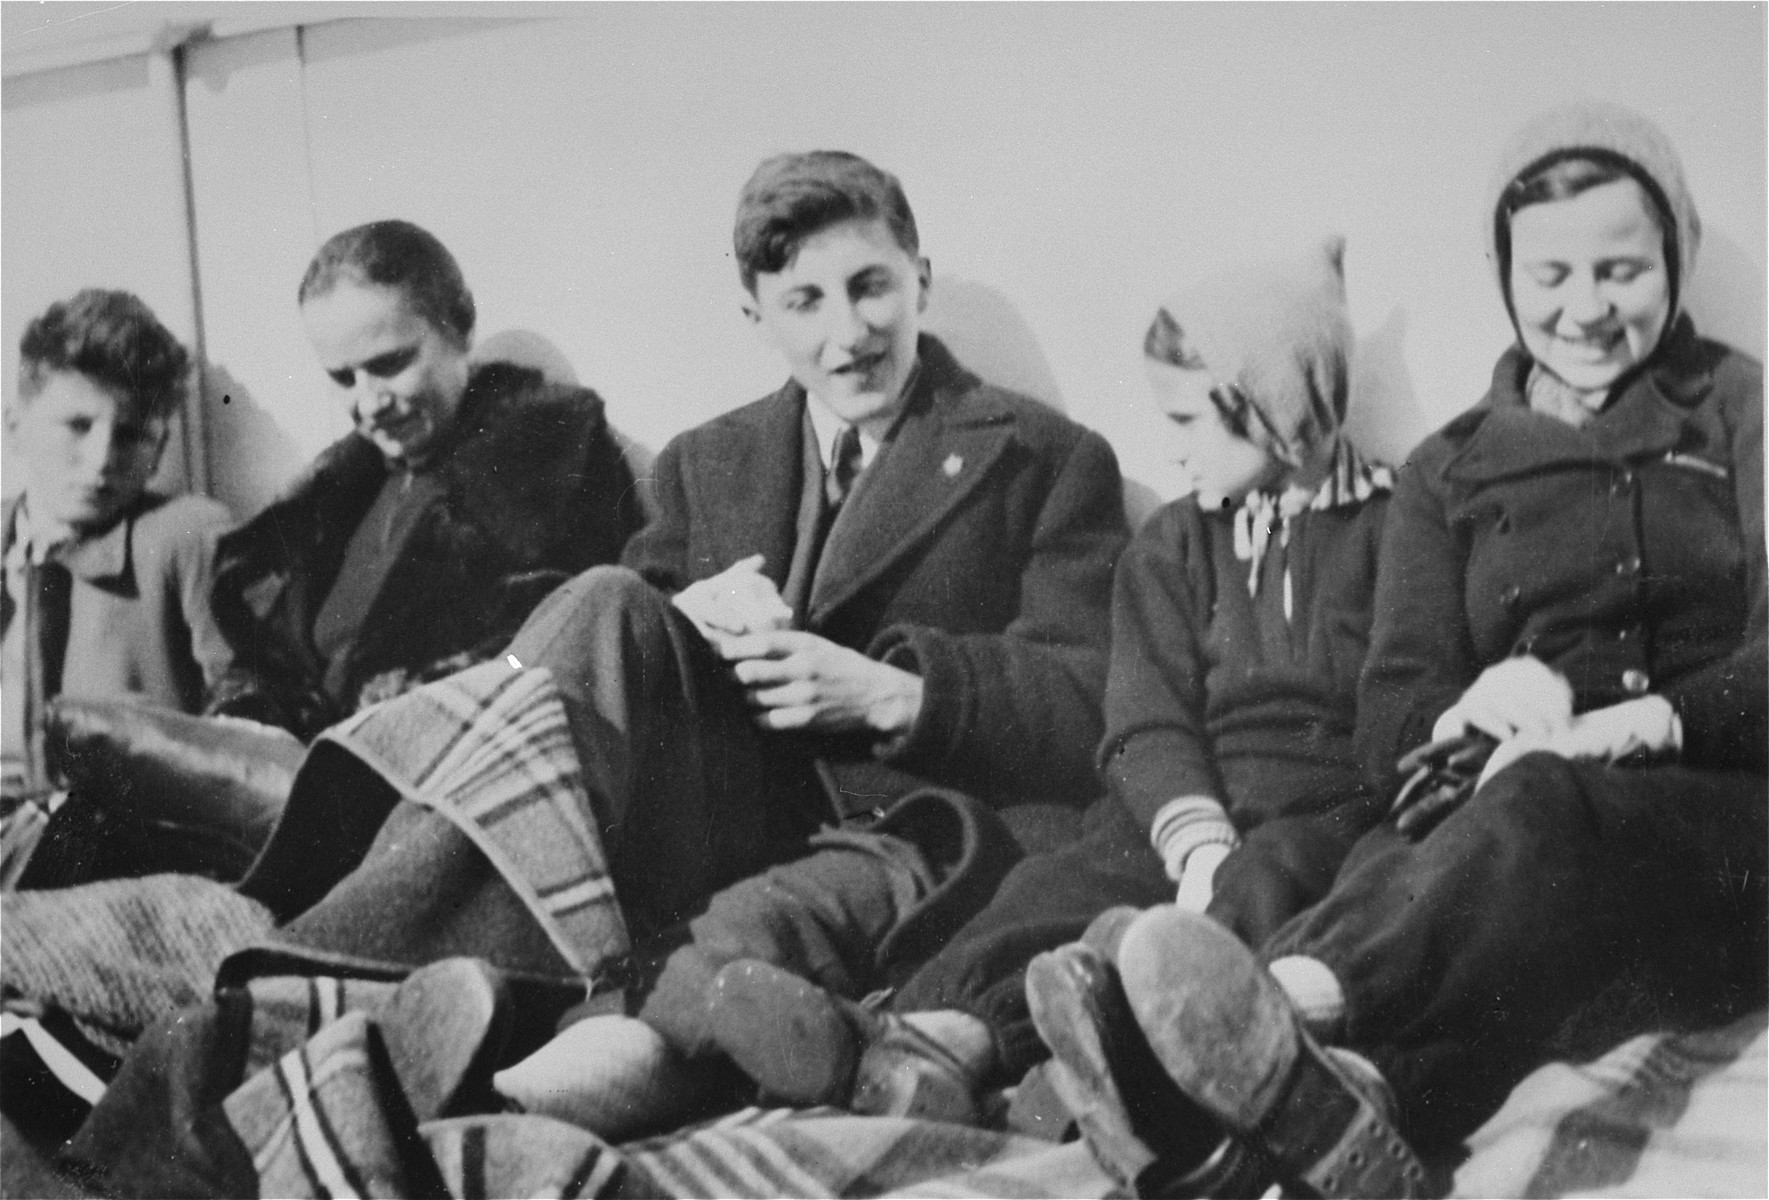 Jewish refugee children sit on the deck of the SS Pennland of the Holland-America line while en route to the U.S.   Among those pictured are: Peter (far left) and Stephen (center) Kollisch from Vienna.